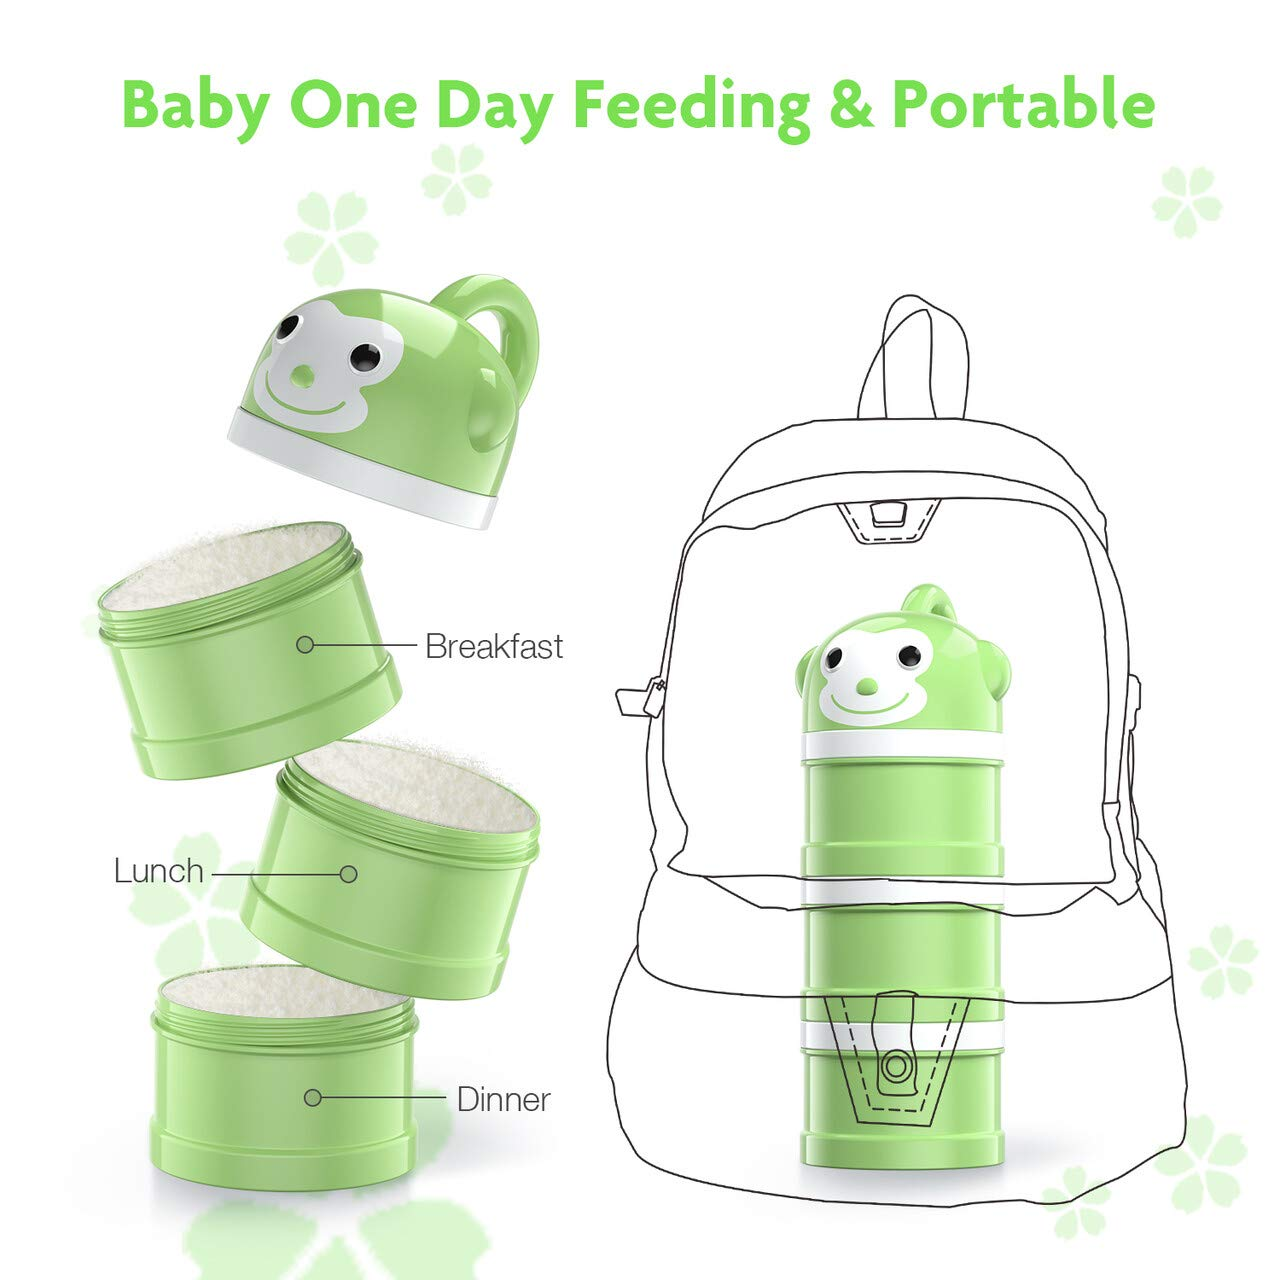 BabyKing Baby Suction Bowl and Spoon Set, Baby Feeding Set, Harmless Cartoon Child Tableware Set, Stay Put Baby Suction Bowl Spill Proof, Spoons Forks Set, 3 Milk Powder Dispensers for Baby's 3 Meals